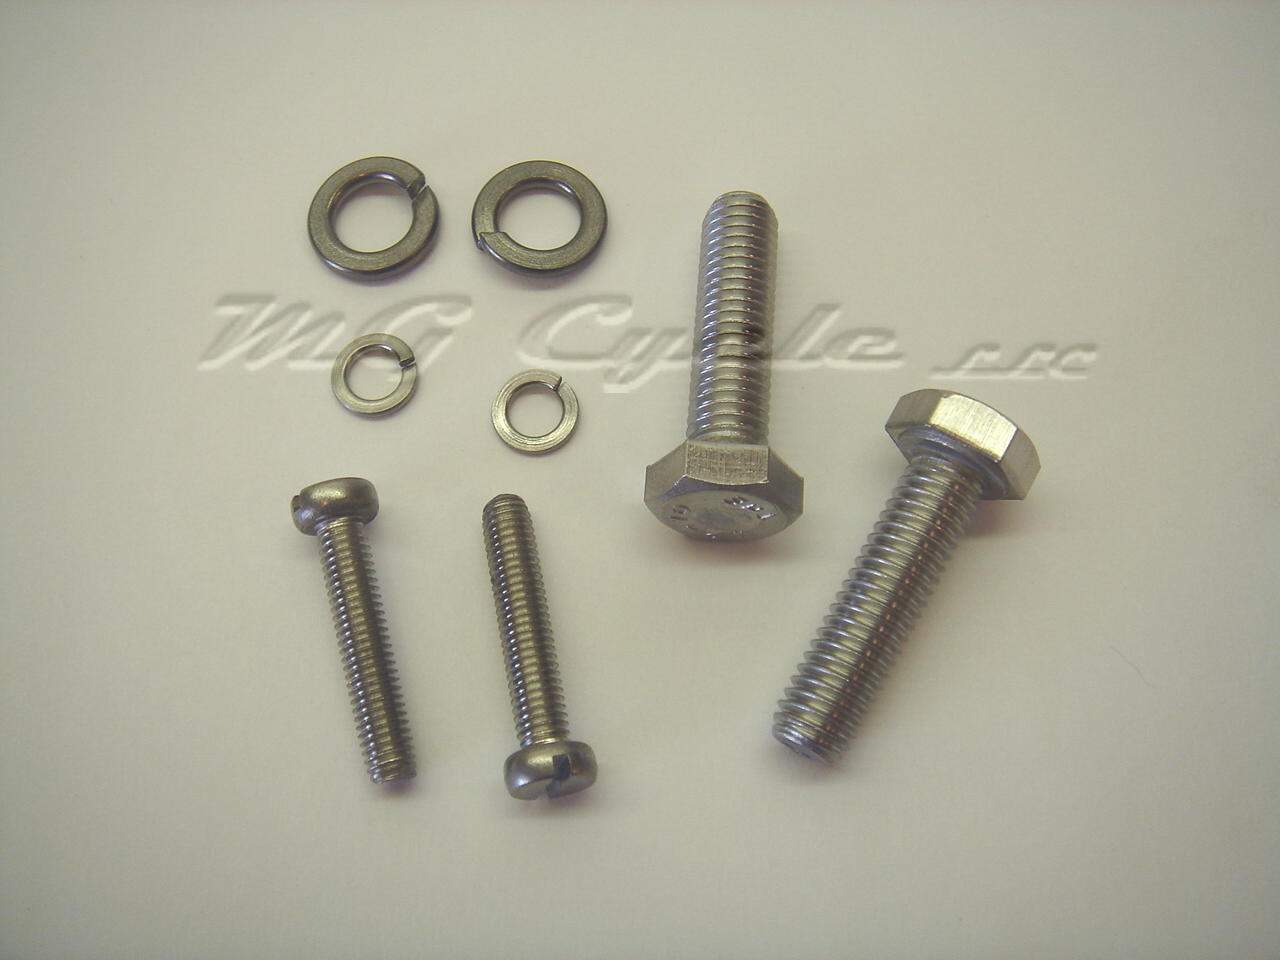 Stainless steel bolt kit for Marelli dual point distributors